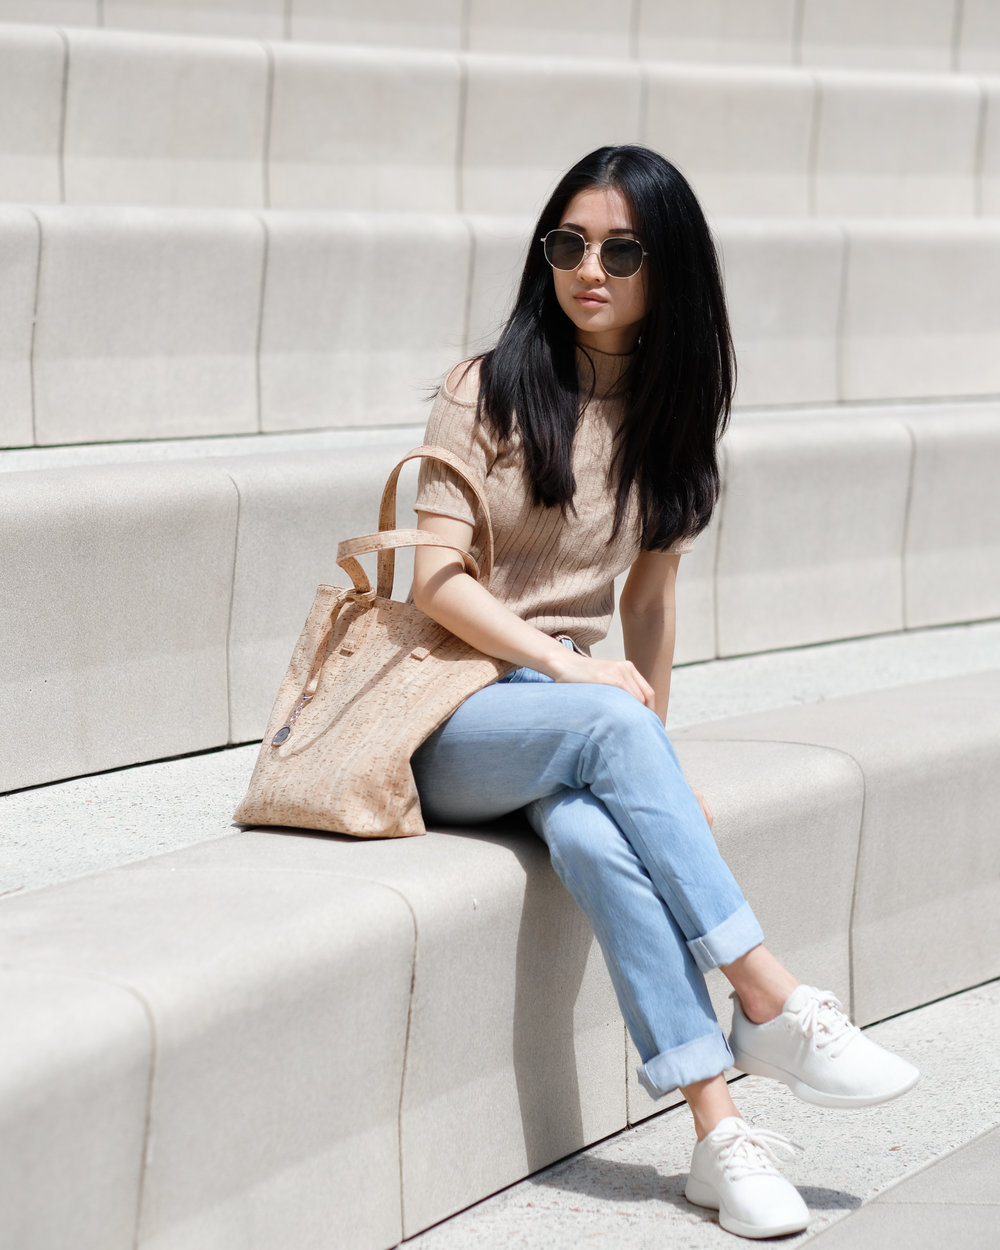 Eco Fashion Blogger Creative Kaméa Chayne @kameachayne